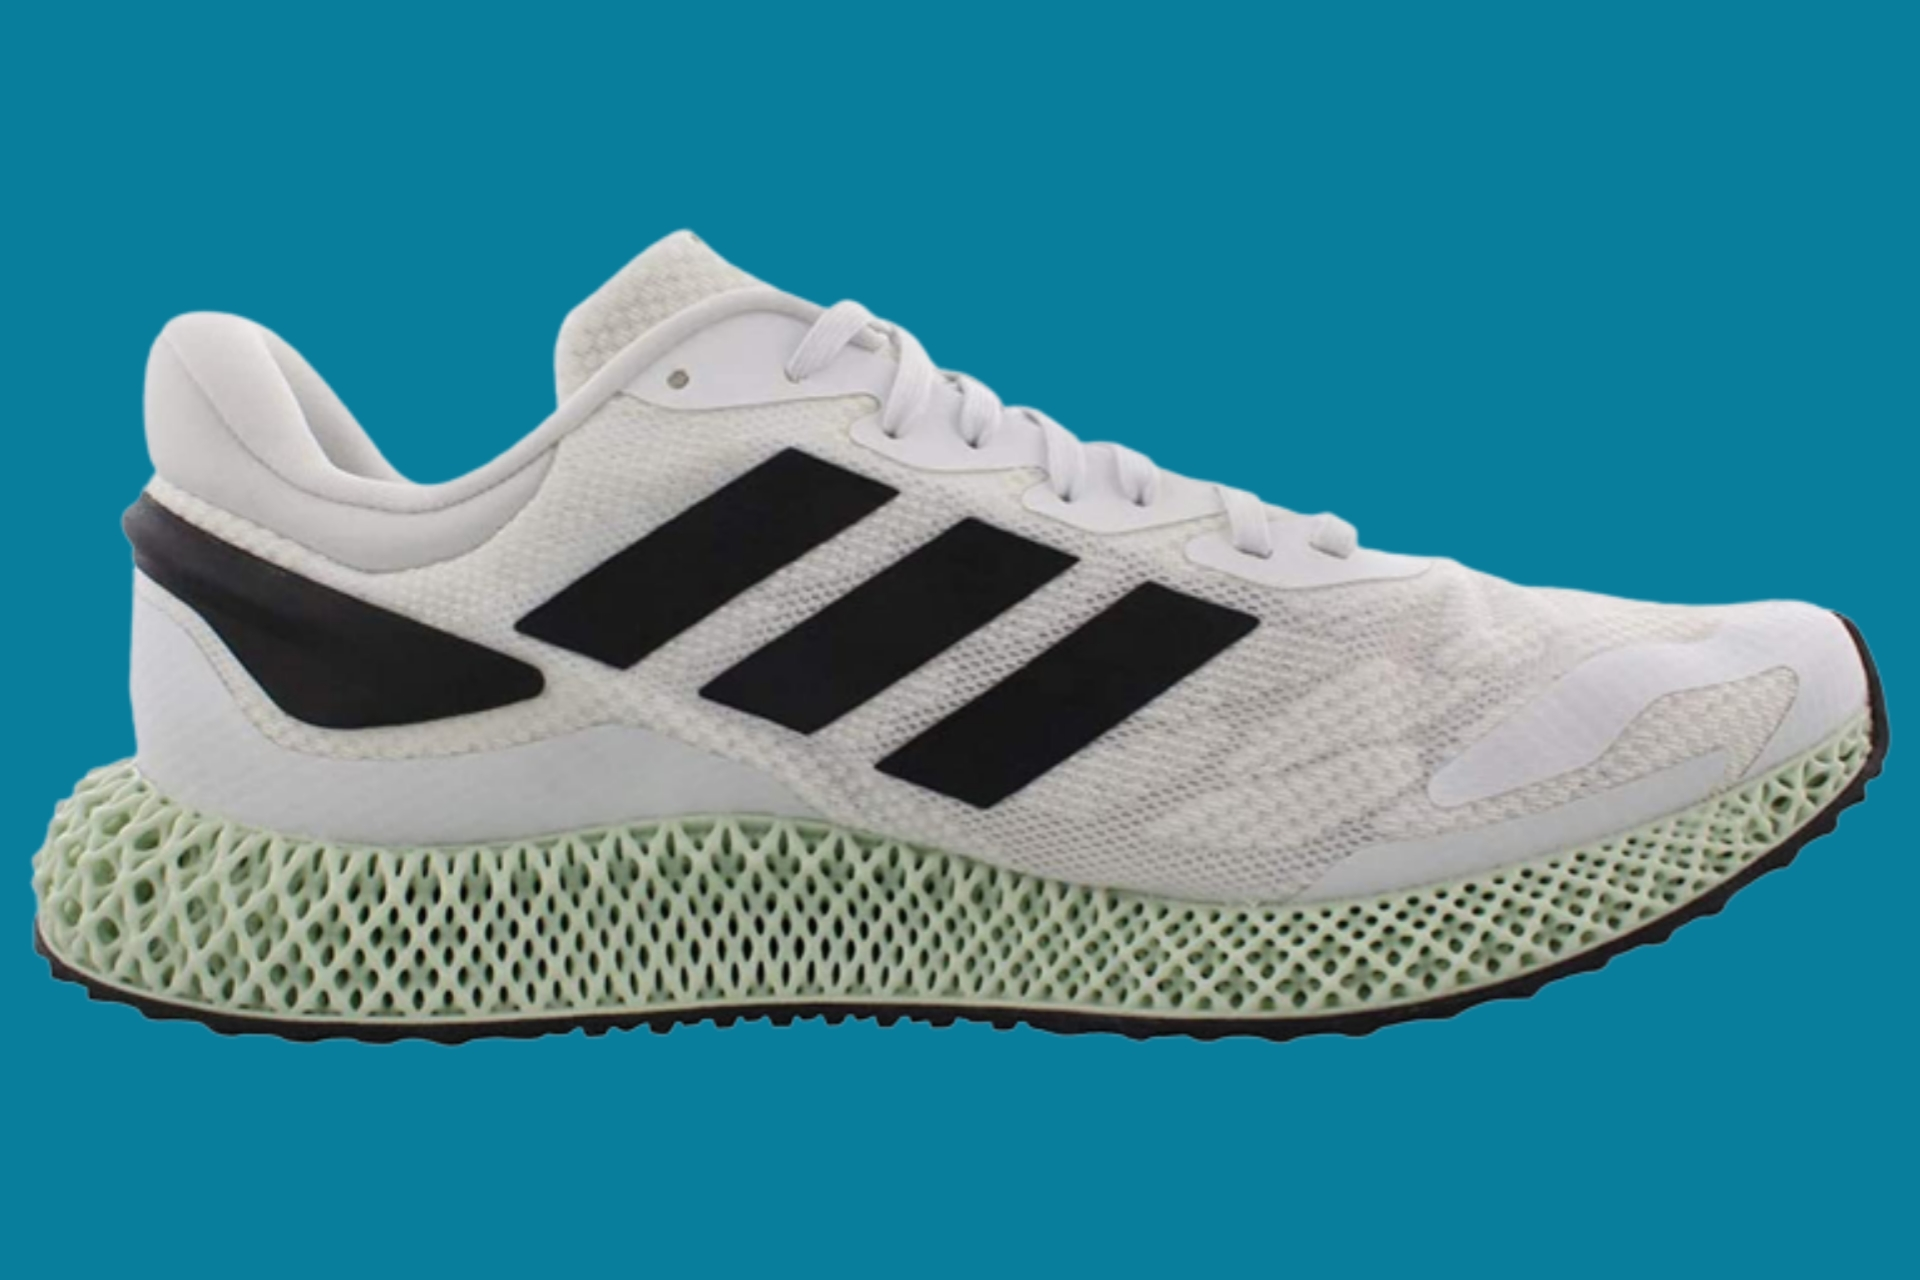 Adidas shoes from ocean waste plastic